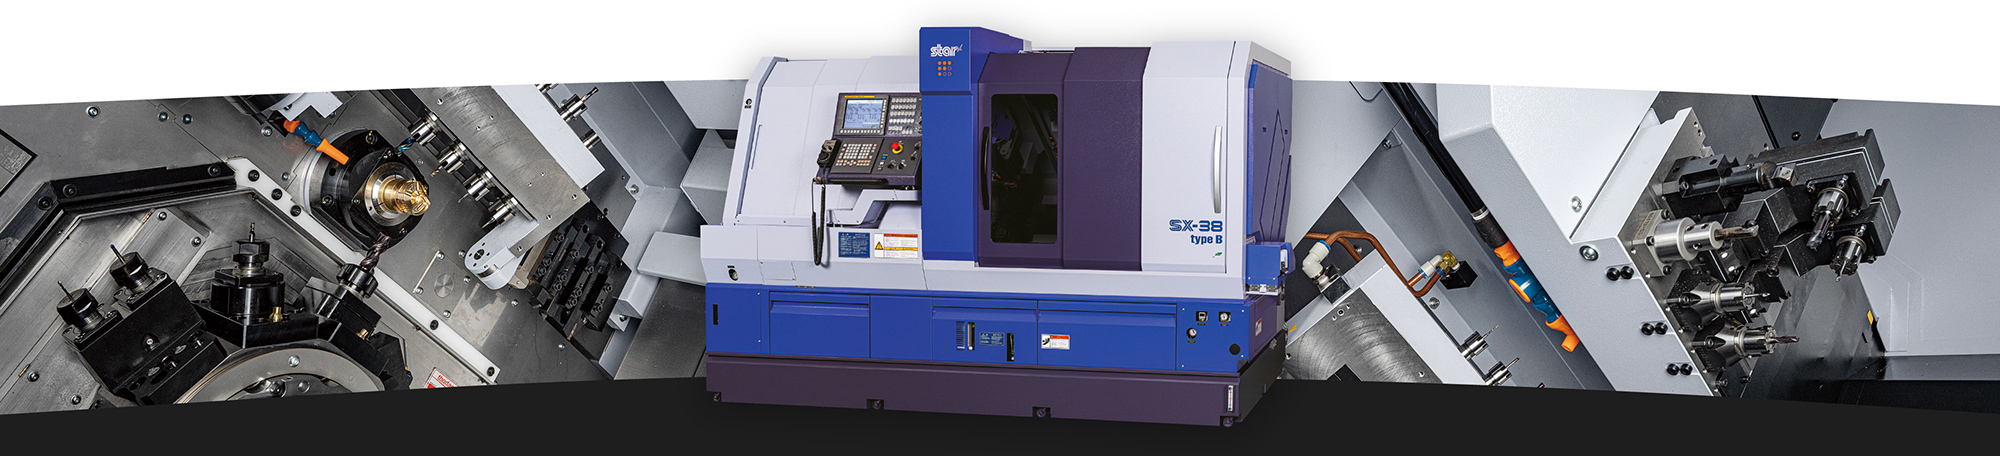 The new SX-38 sliding head lathe